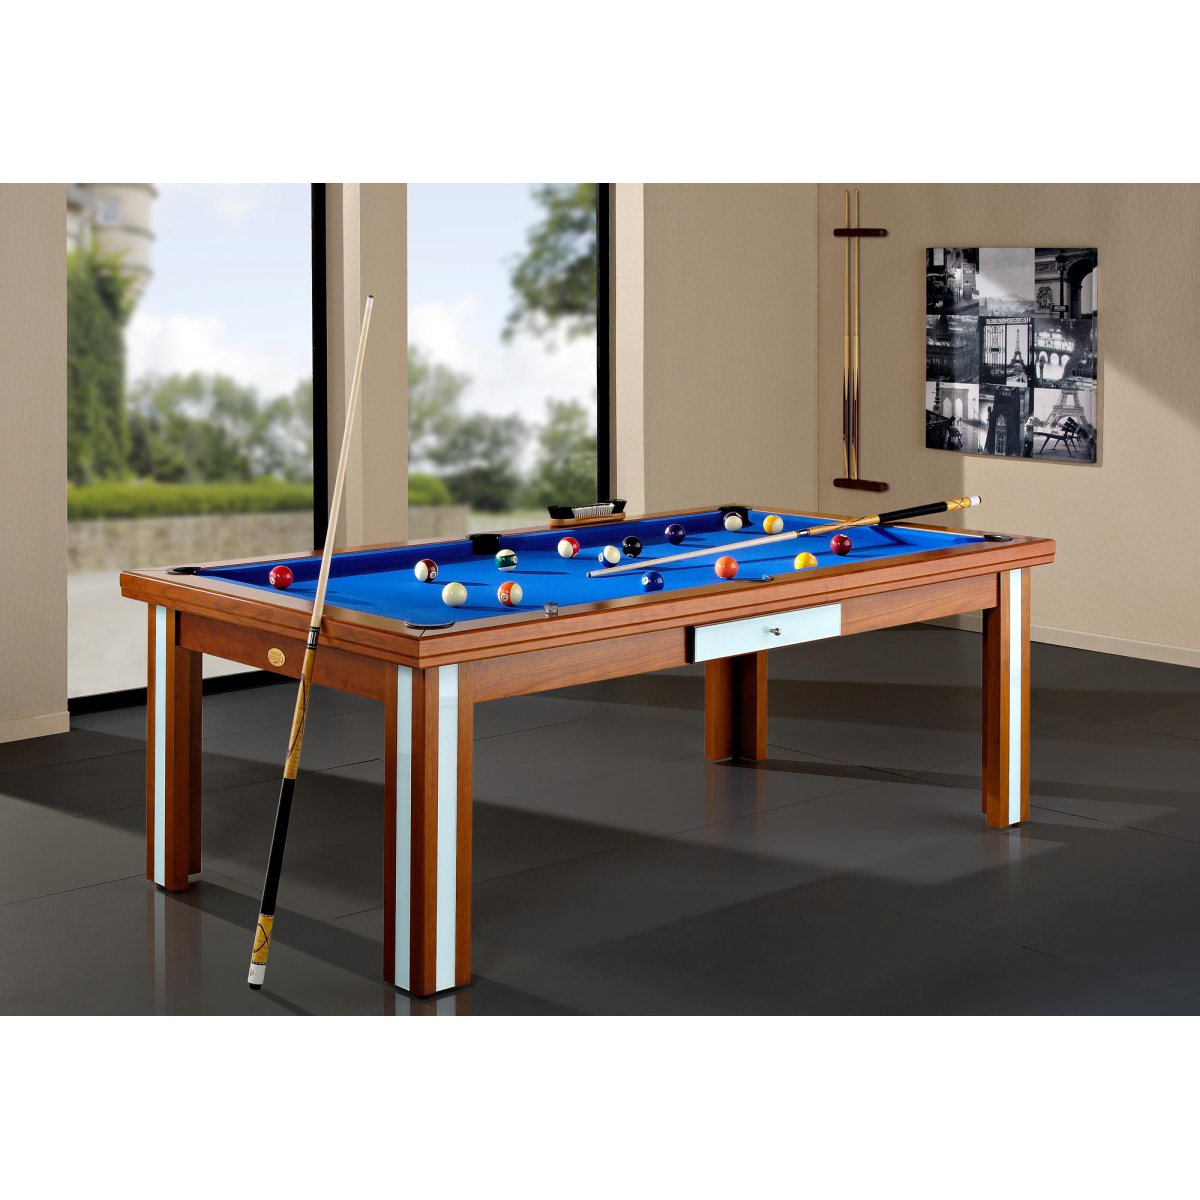 Table billard convertible milan verre for Table billard convertible belgique